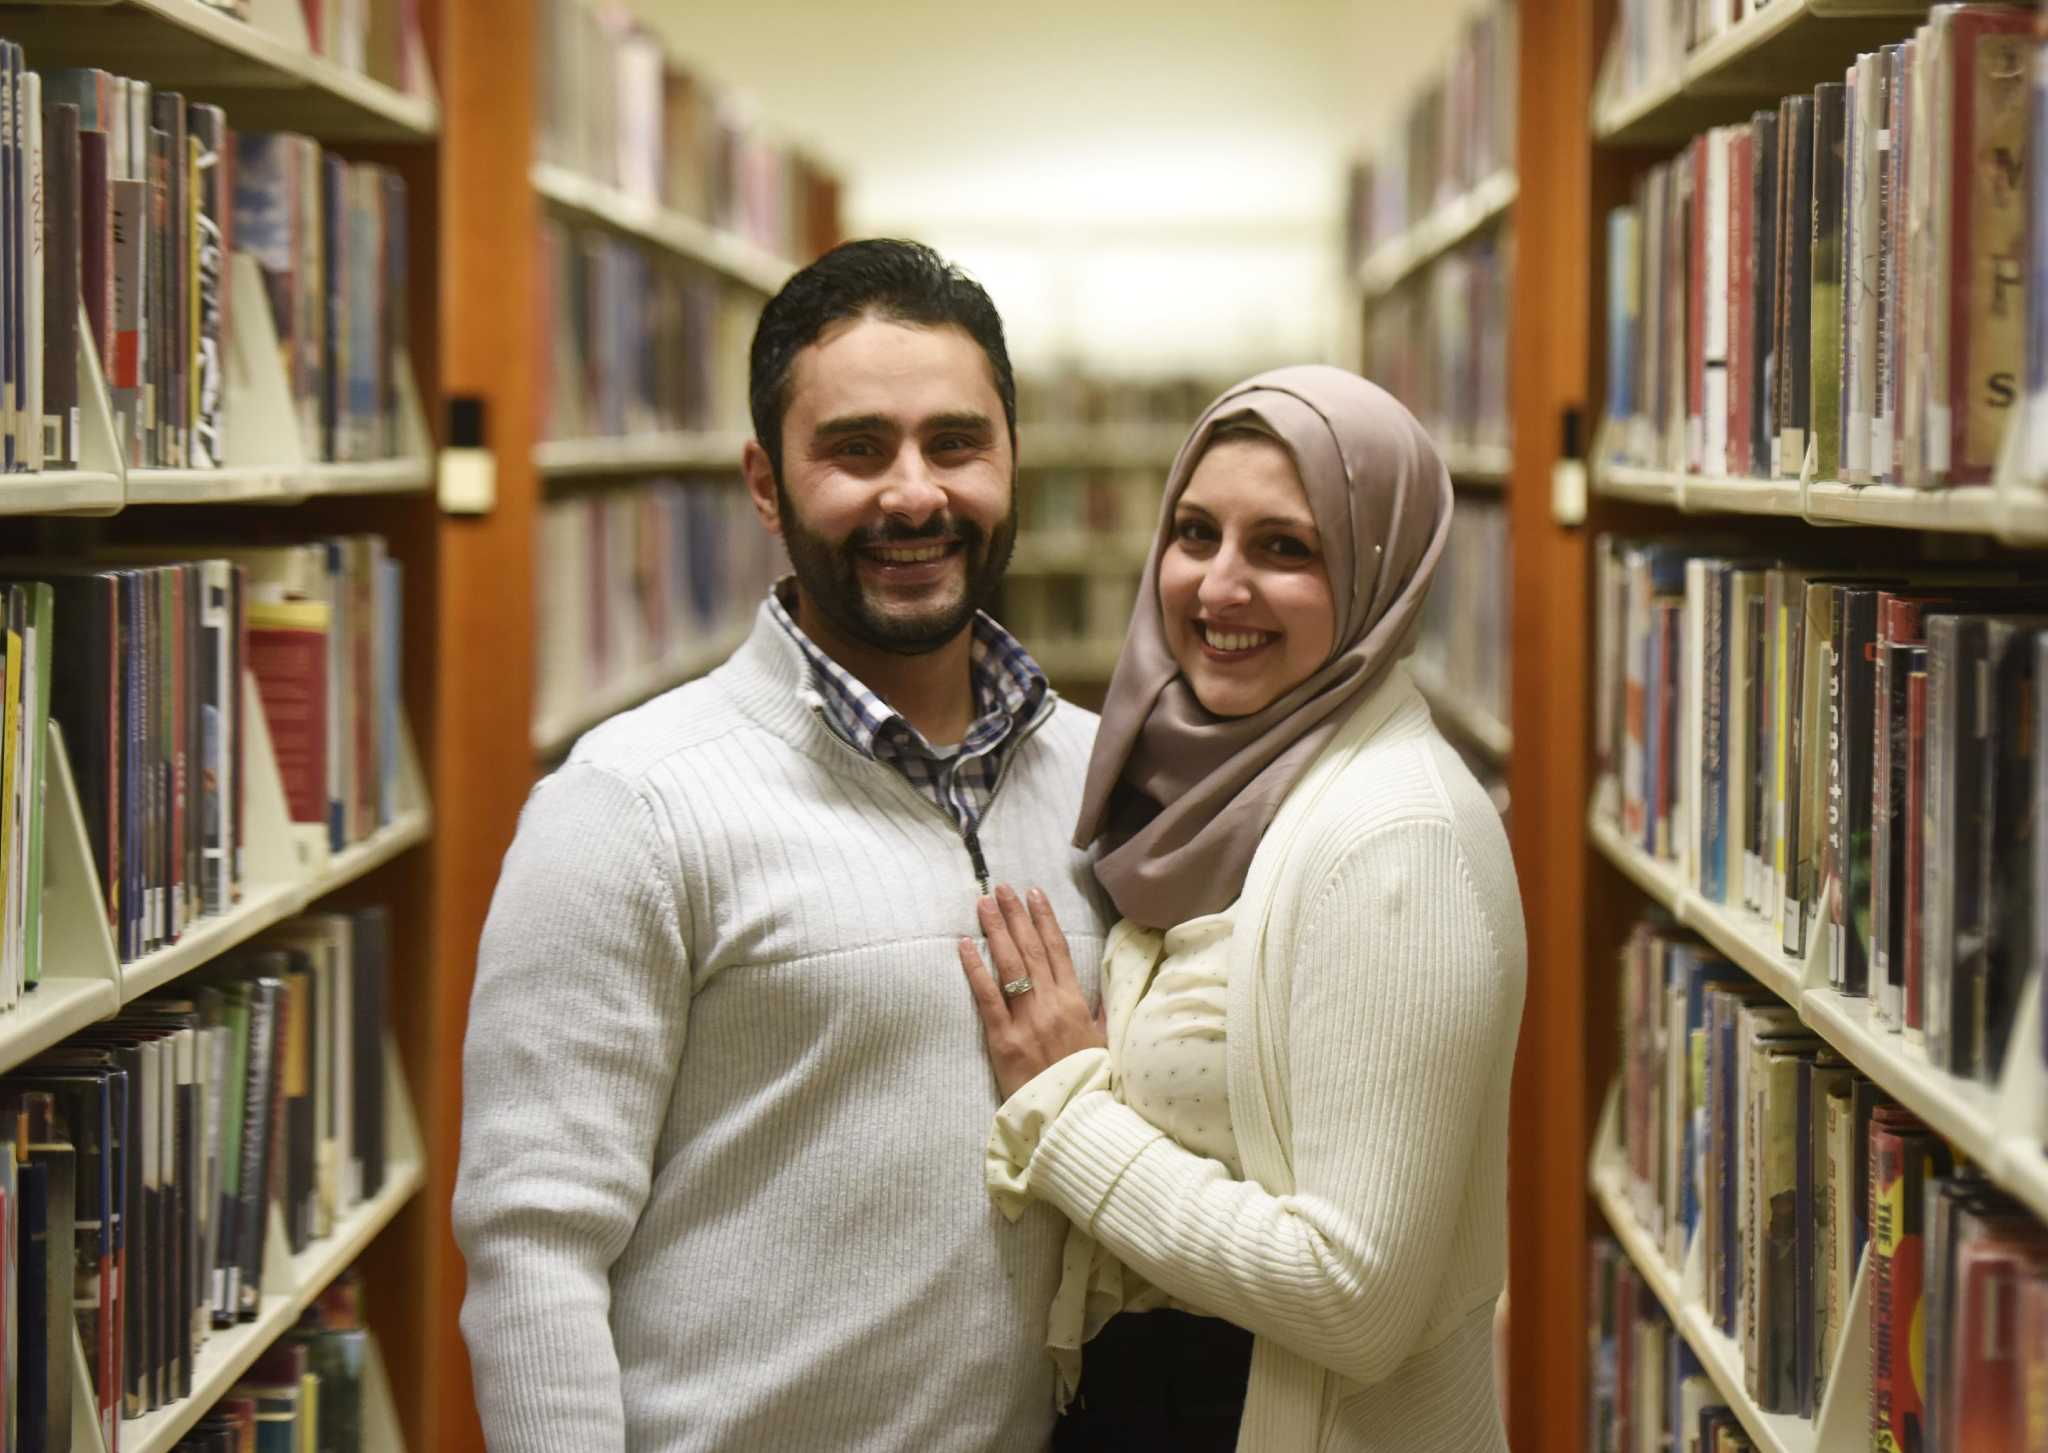 new fairfield muslim Donate cars to new fairfield free public library, truck, van, boat or rv and receive a tax deduction car donation to new fairfield free public library, fast, free pickup.